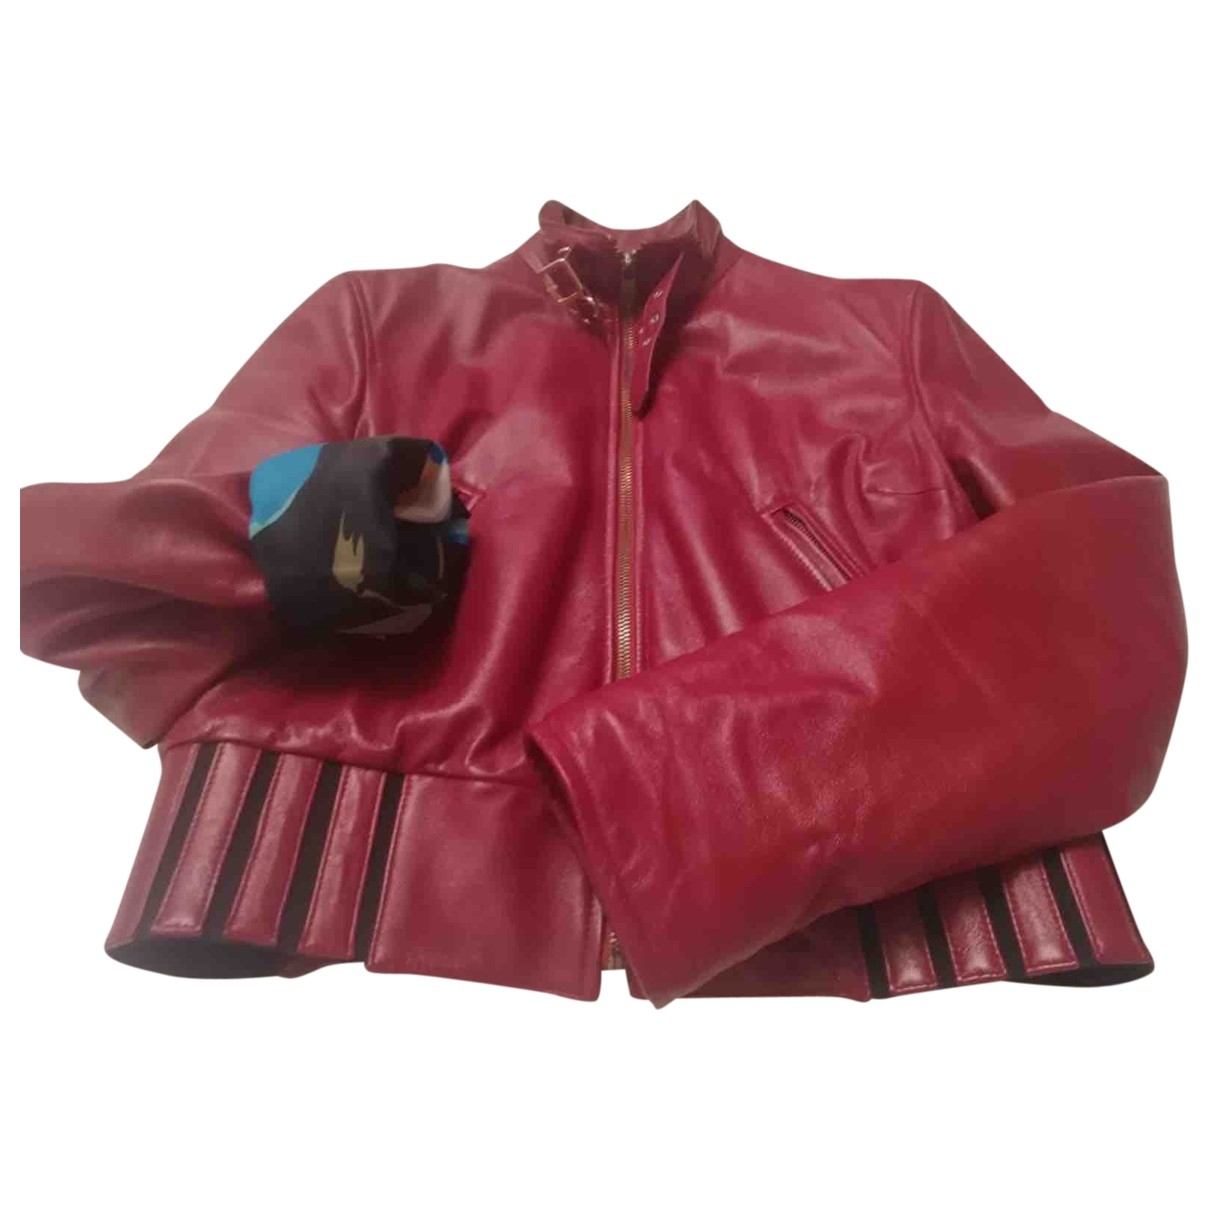 D&g \N Burgundy Leather Leather jacket for Women 46 IT